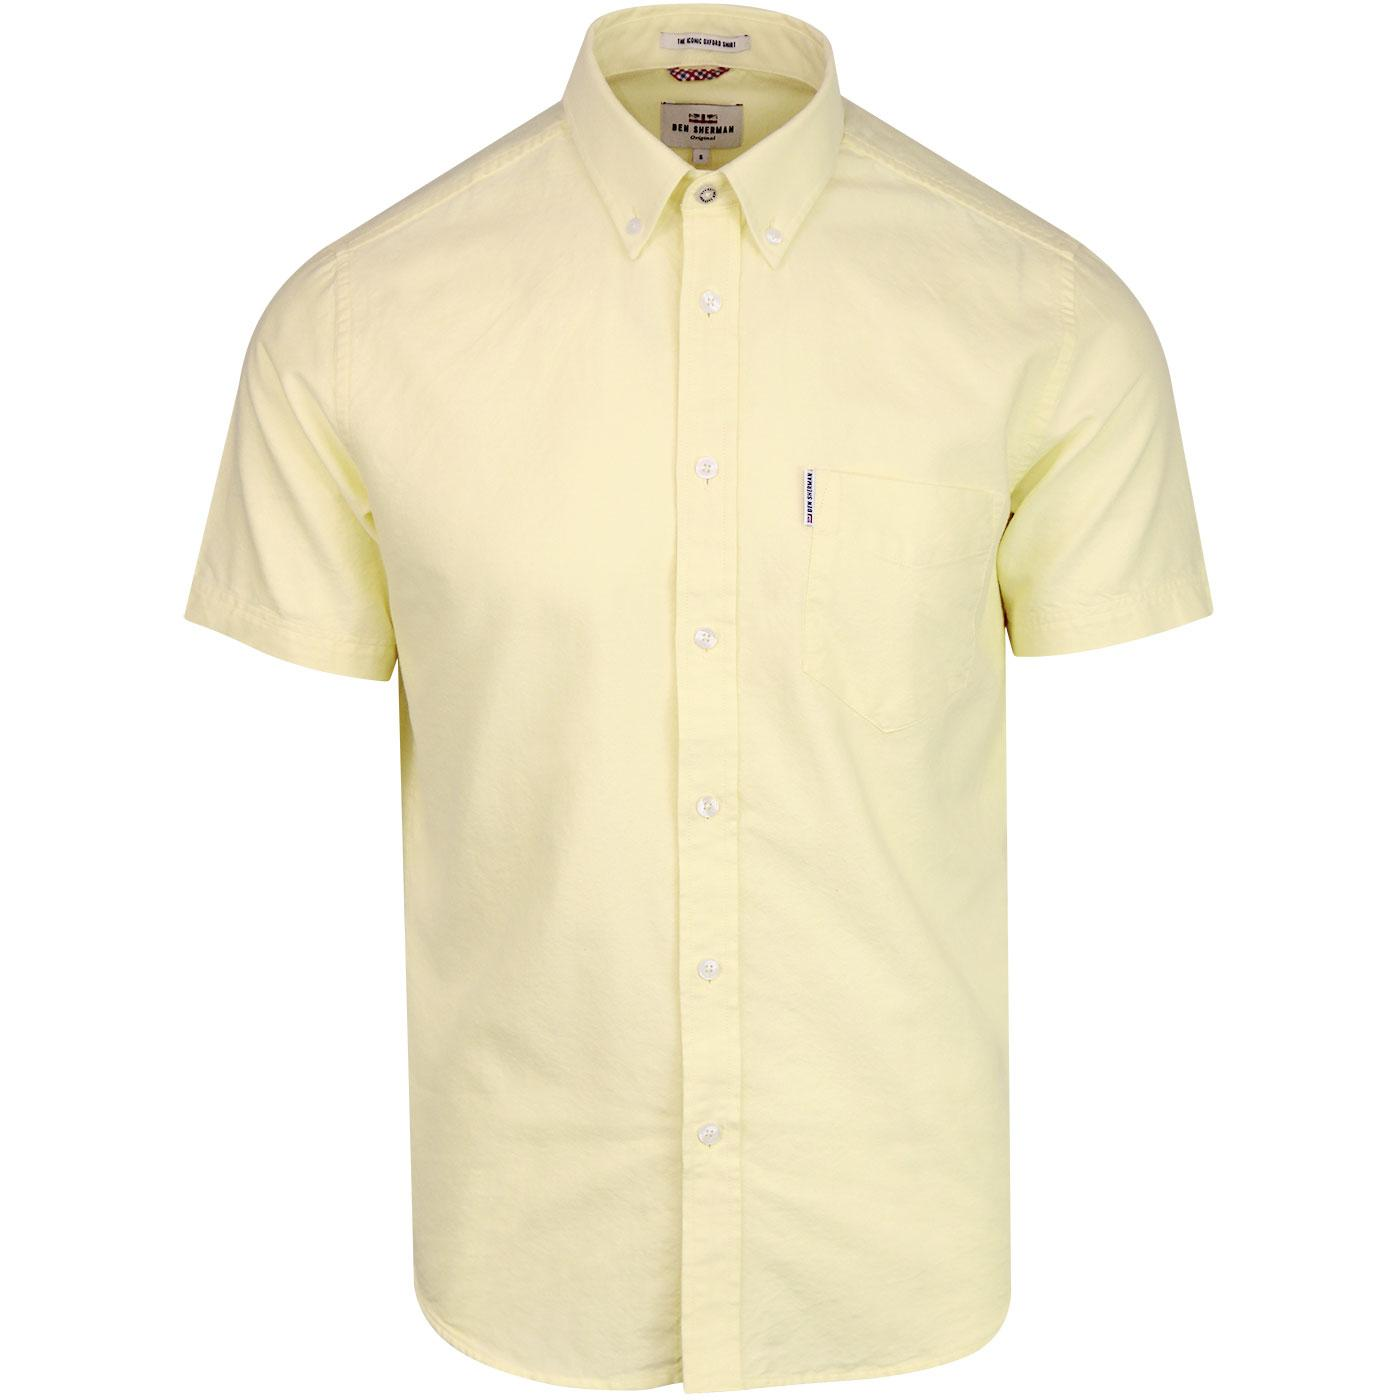 BEN SHERMAN S/S Core Retro Mod Oxford Shirt YELLOW